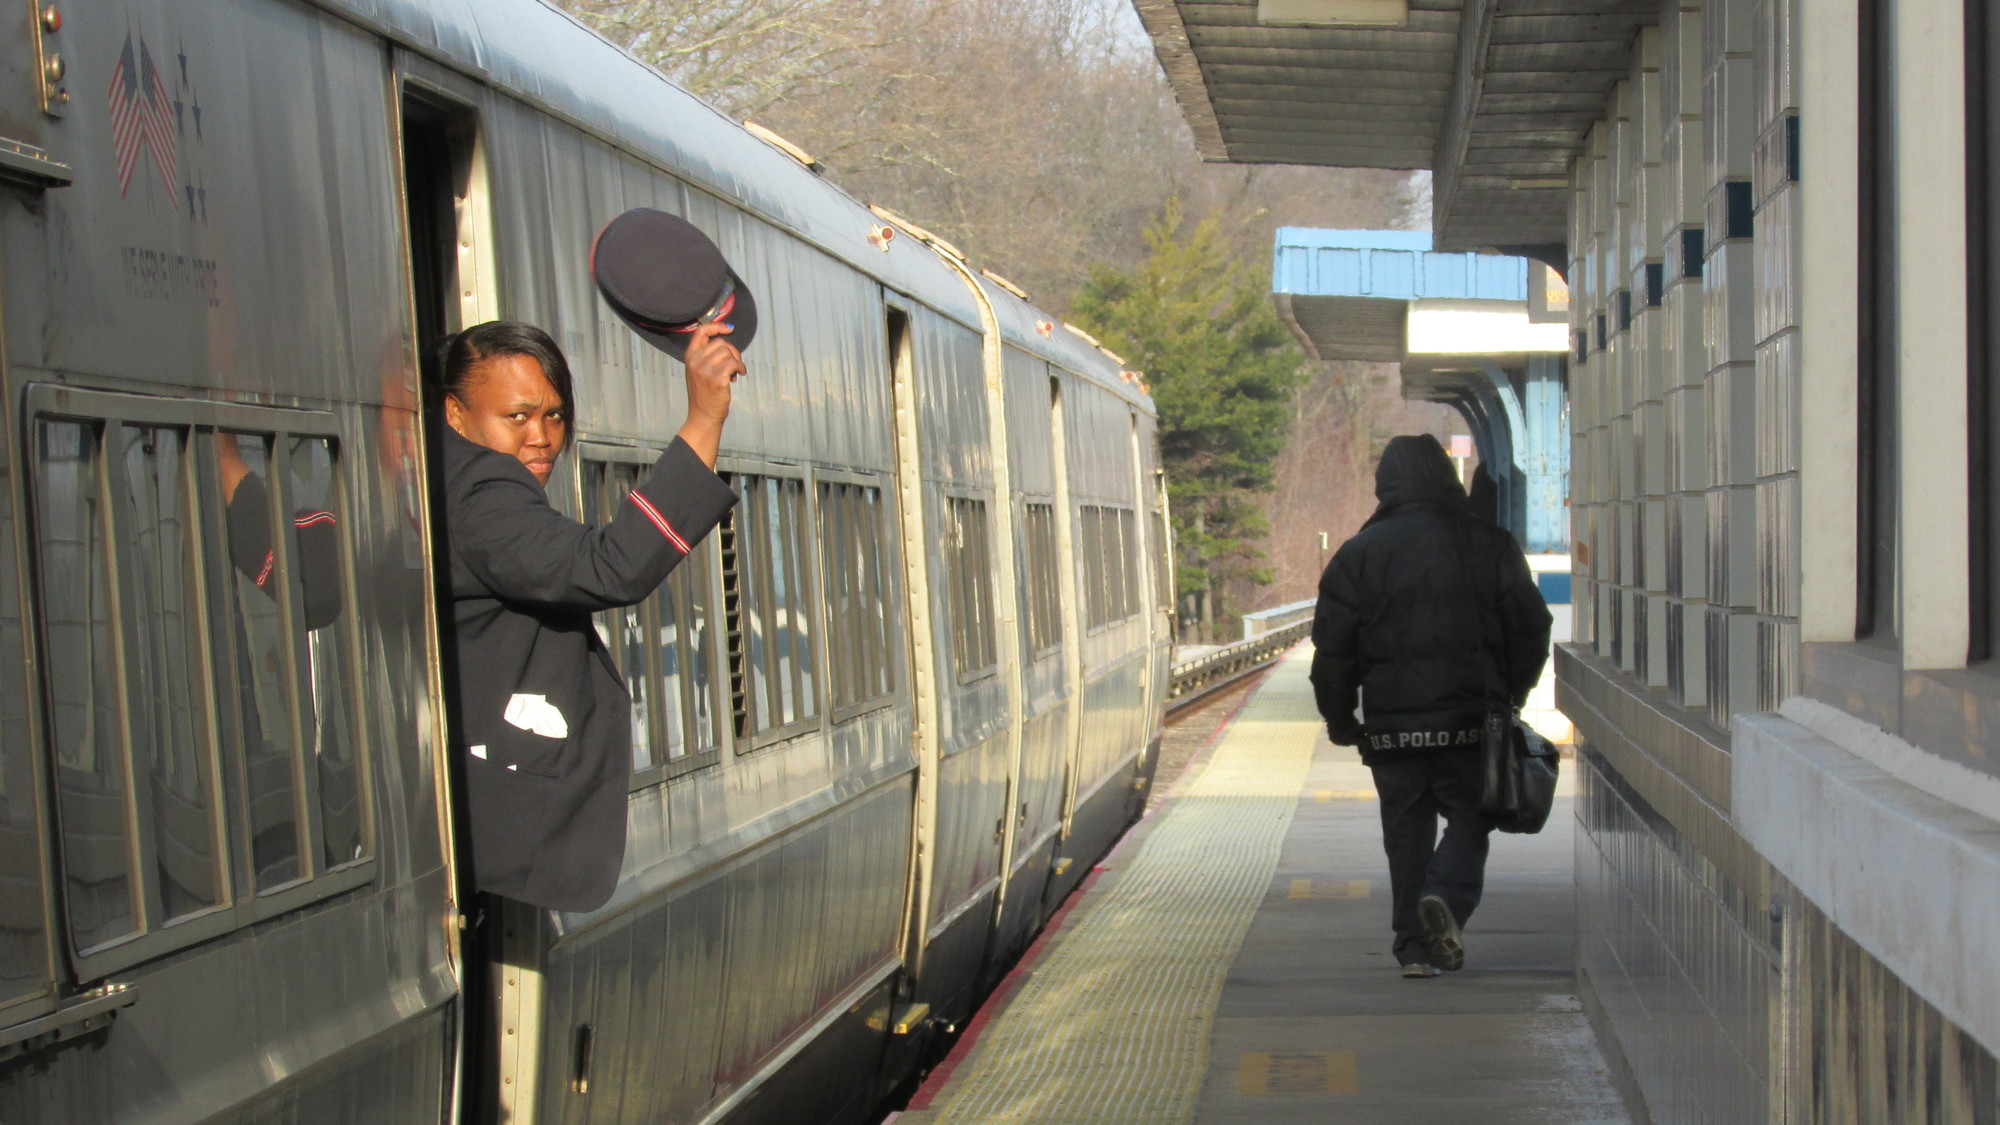 After worrying much of last week, commuters got to work as usual this week after a Long Island Rail Road strike was averted.